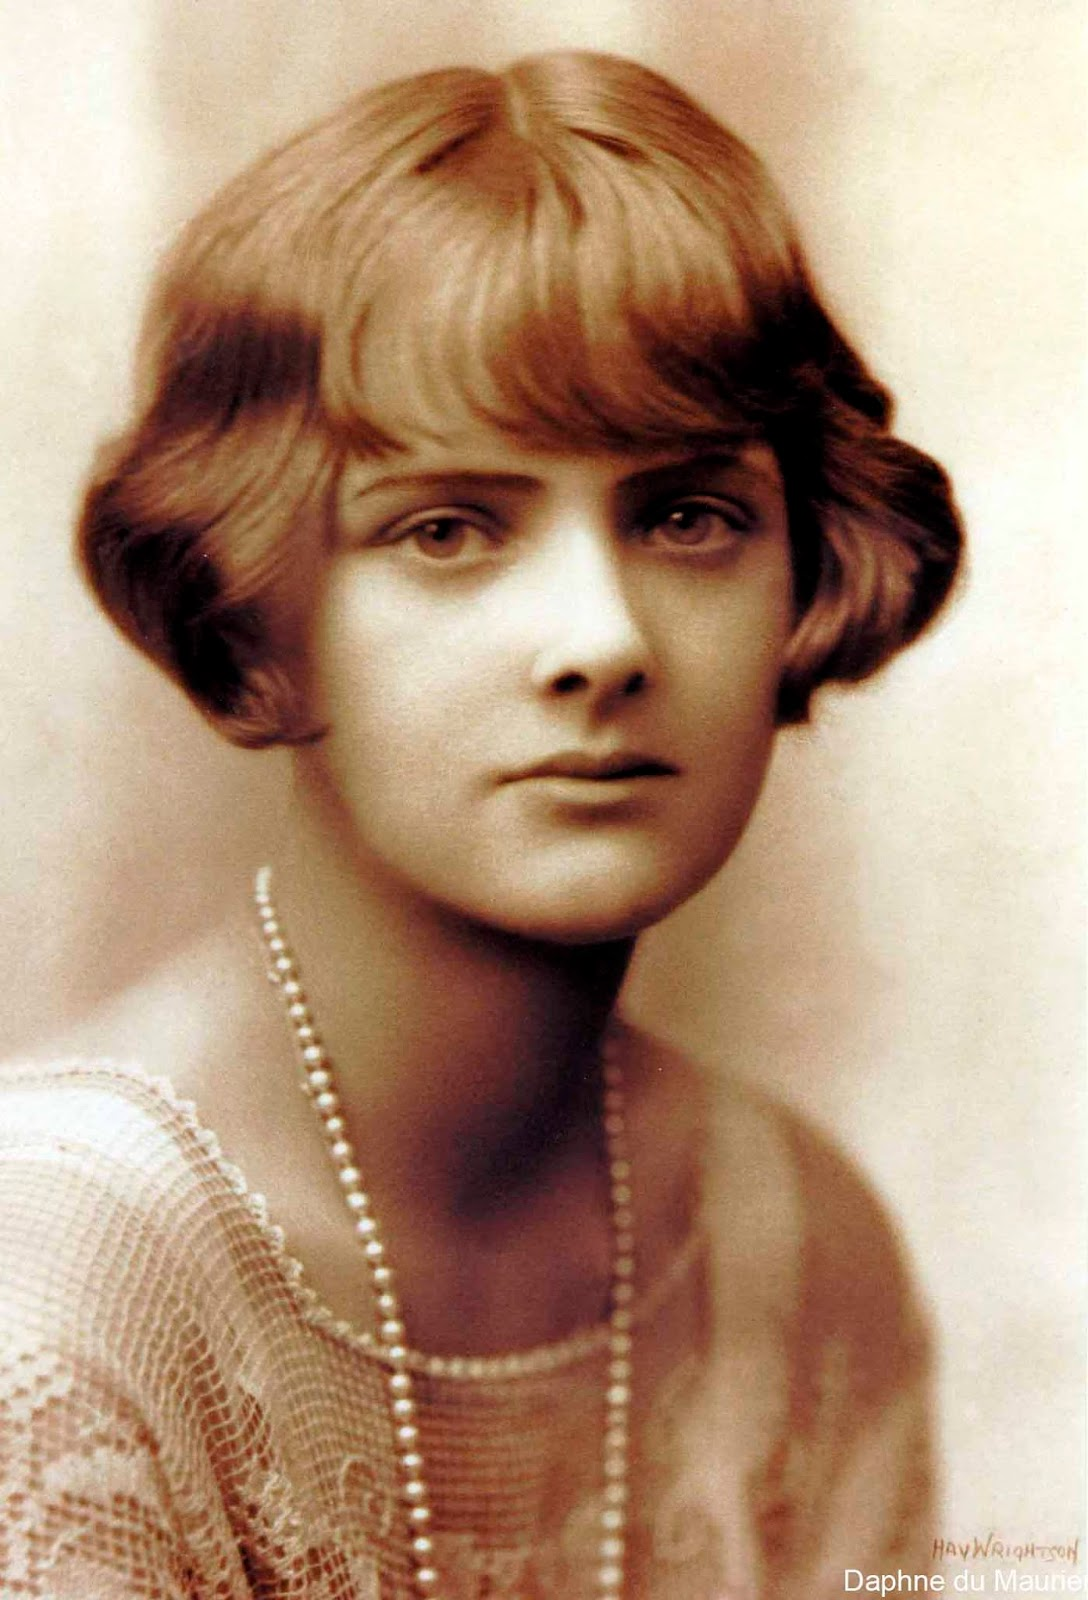 An analysis of the main characters from the novel rebecca by daphne du maurier